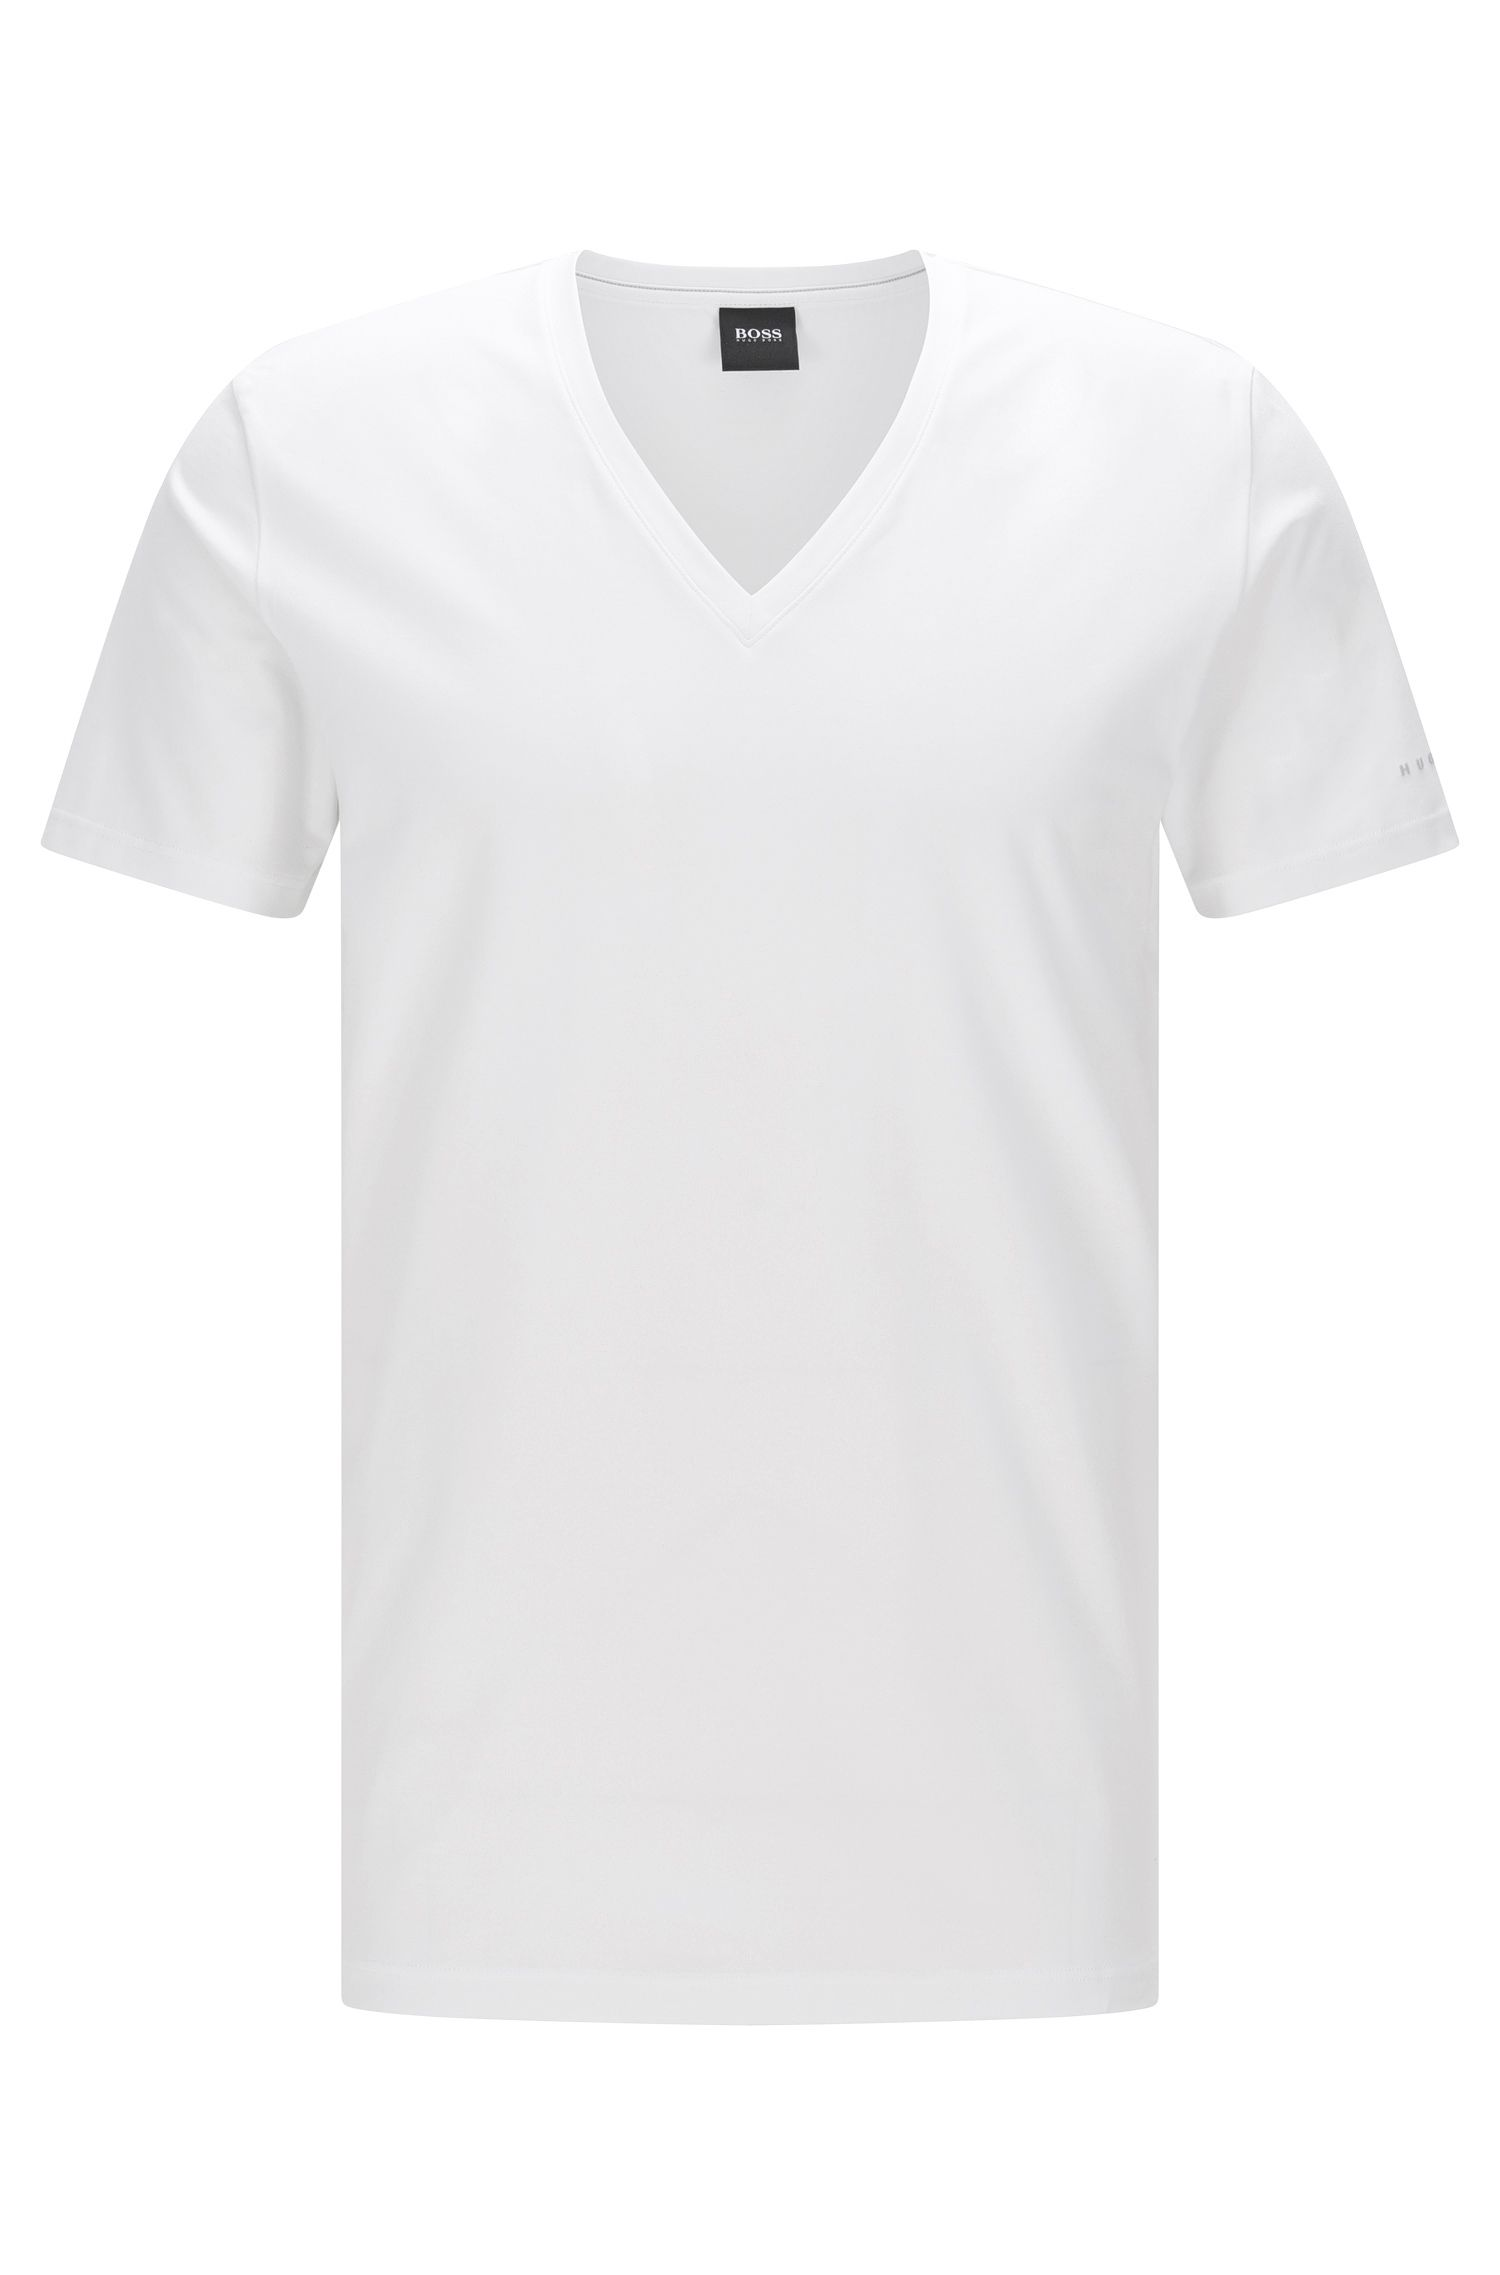 Travel Line T-shirt in a stretchy, breathable cotton blend:  'T-Shirt VN Cotton+ '